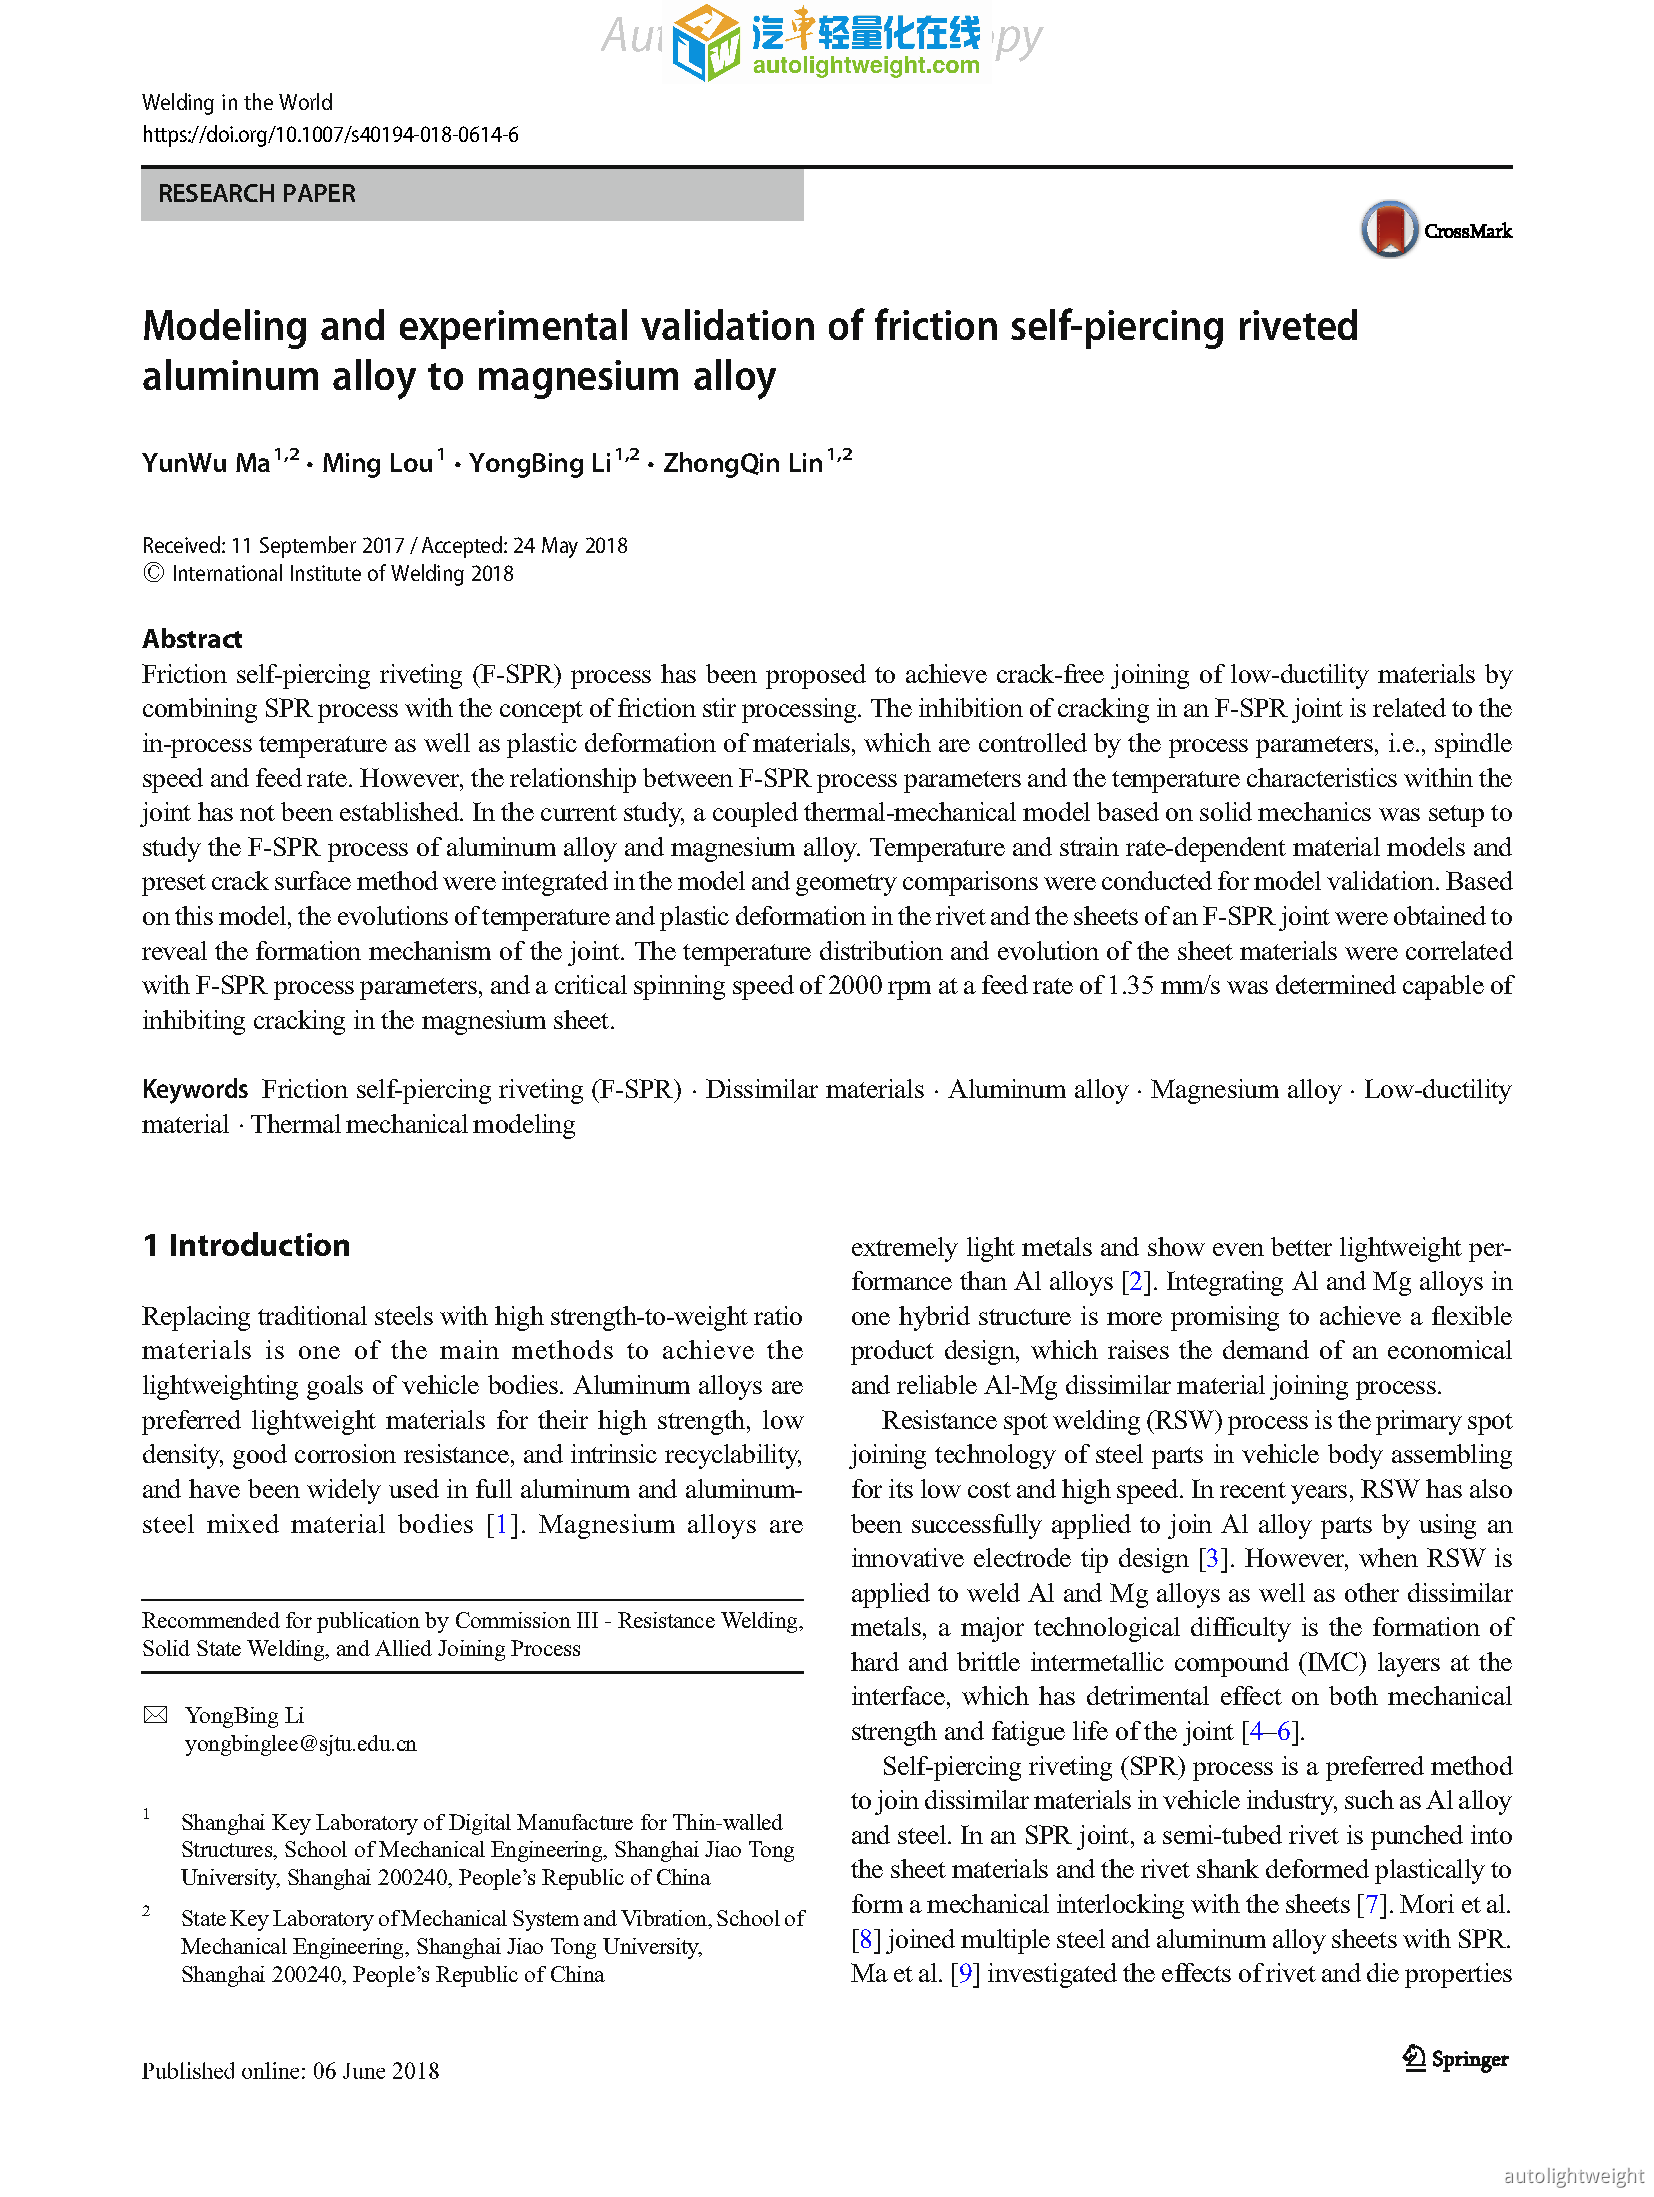 Modeling and experimental validation of friction self-piercing riveted aluminum .png